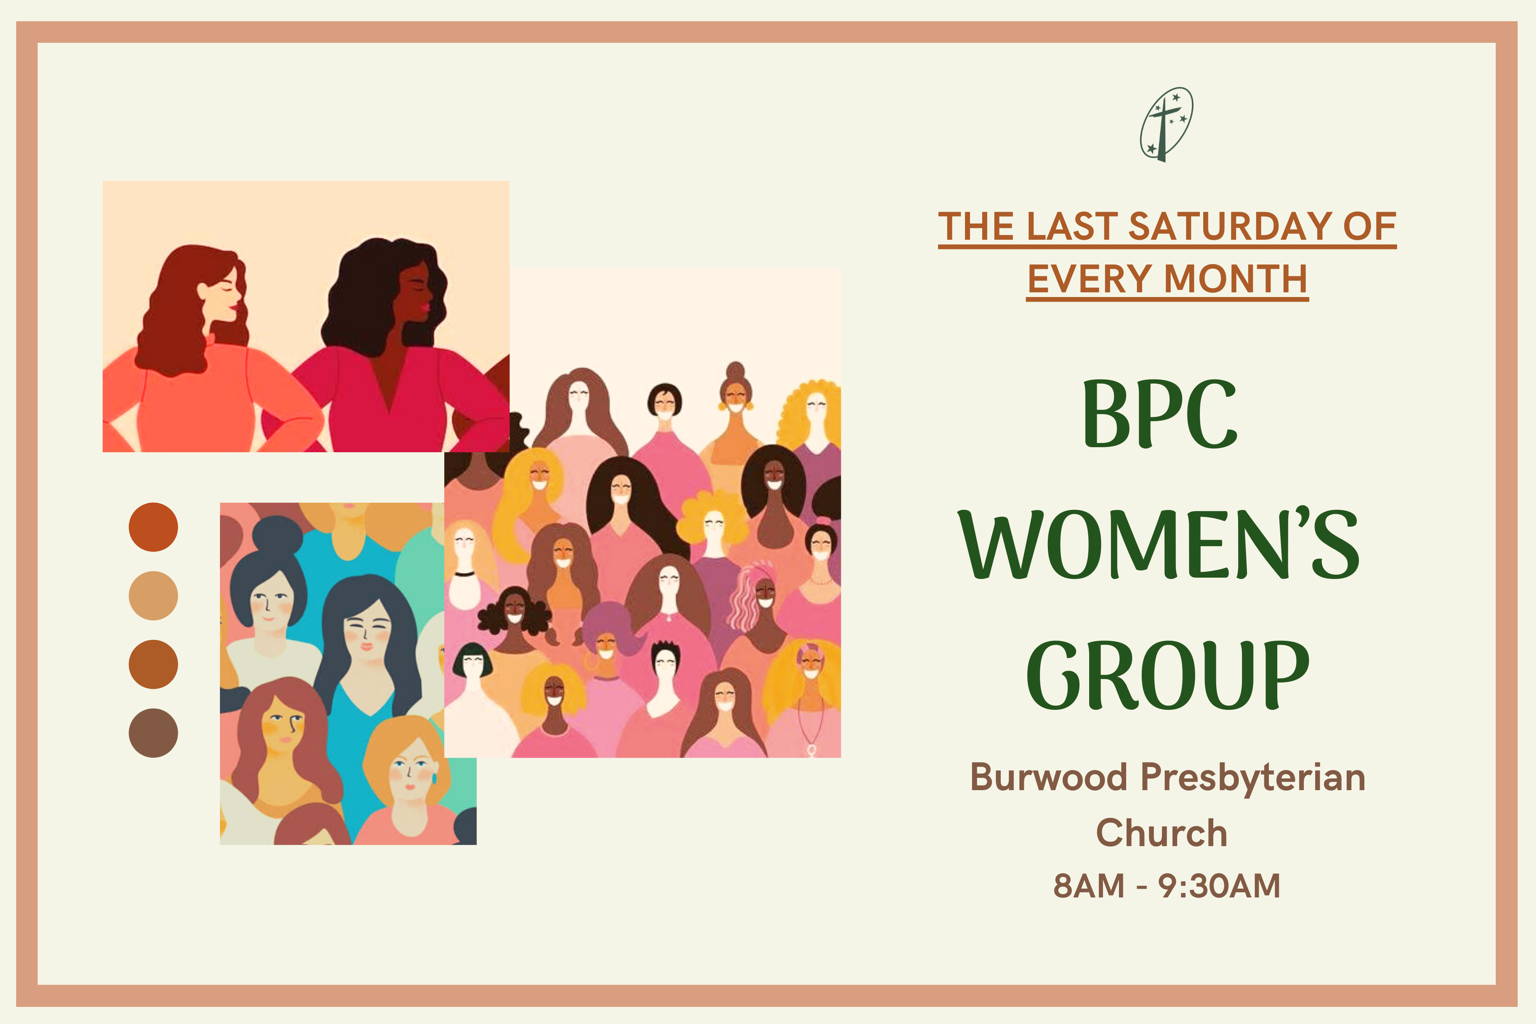 BPC Women's Group